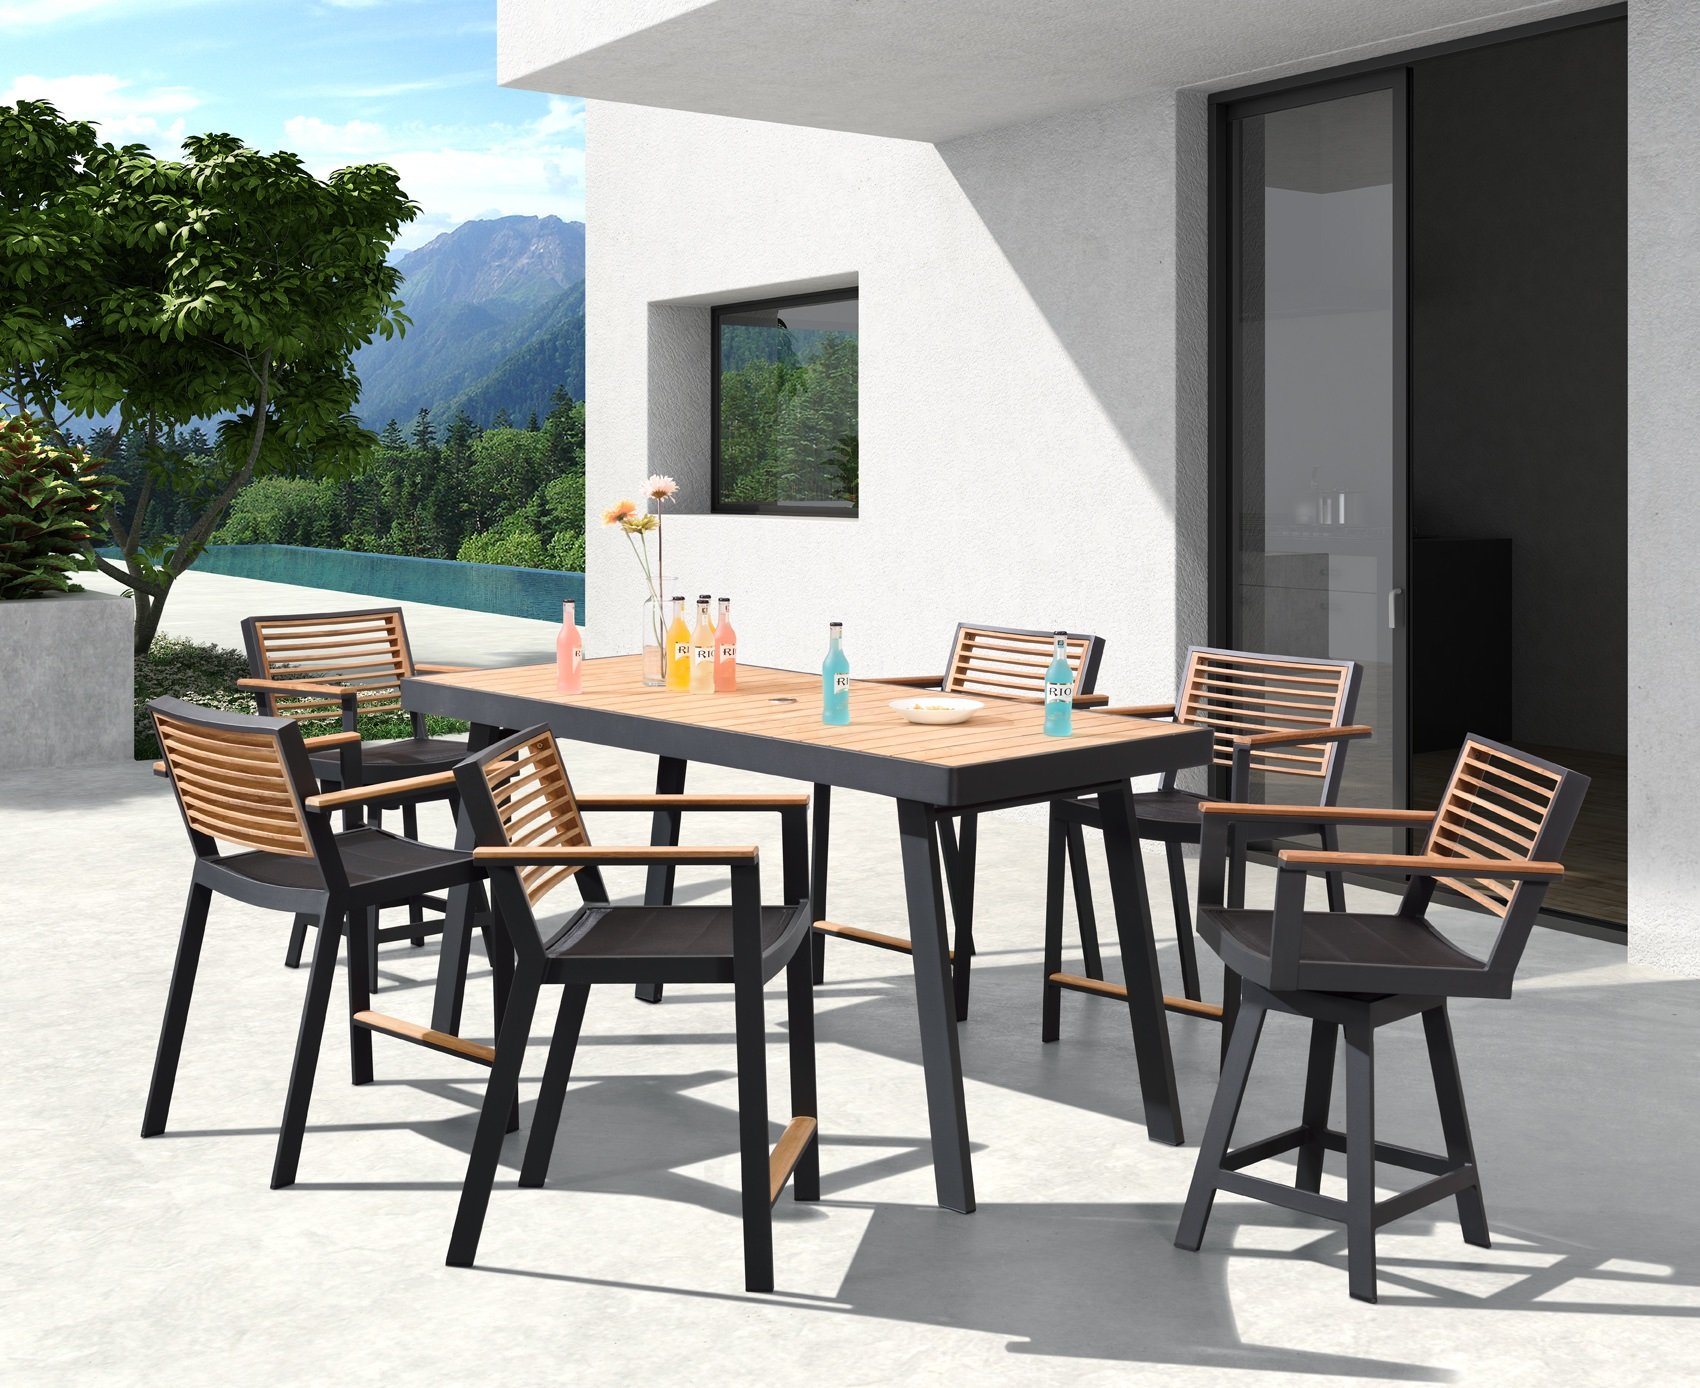 St.Lucia series is a mix of contemporary design with a designer look giving your outdoor furniture a unique indoor feel. Using the finest materials such as teak, textilene and powder coated aluminum your furniture will have the most sophisticated look.